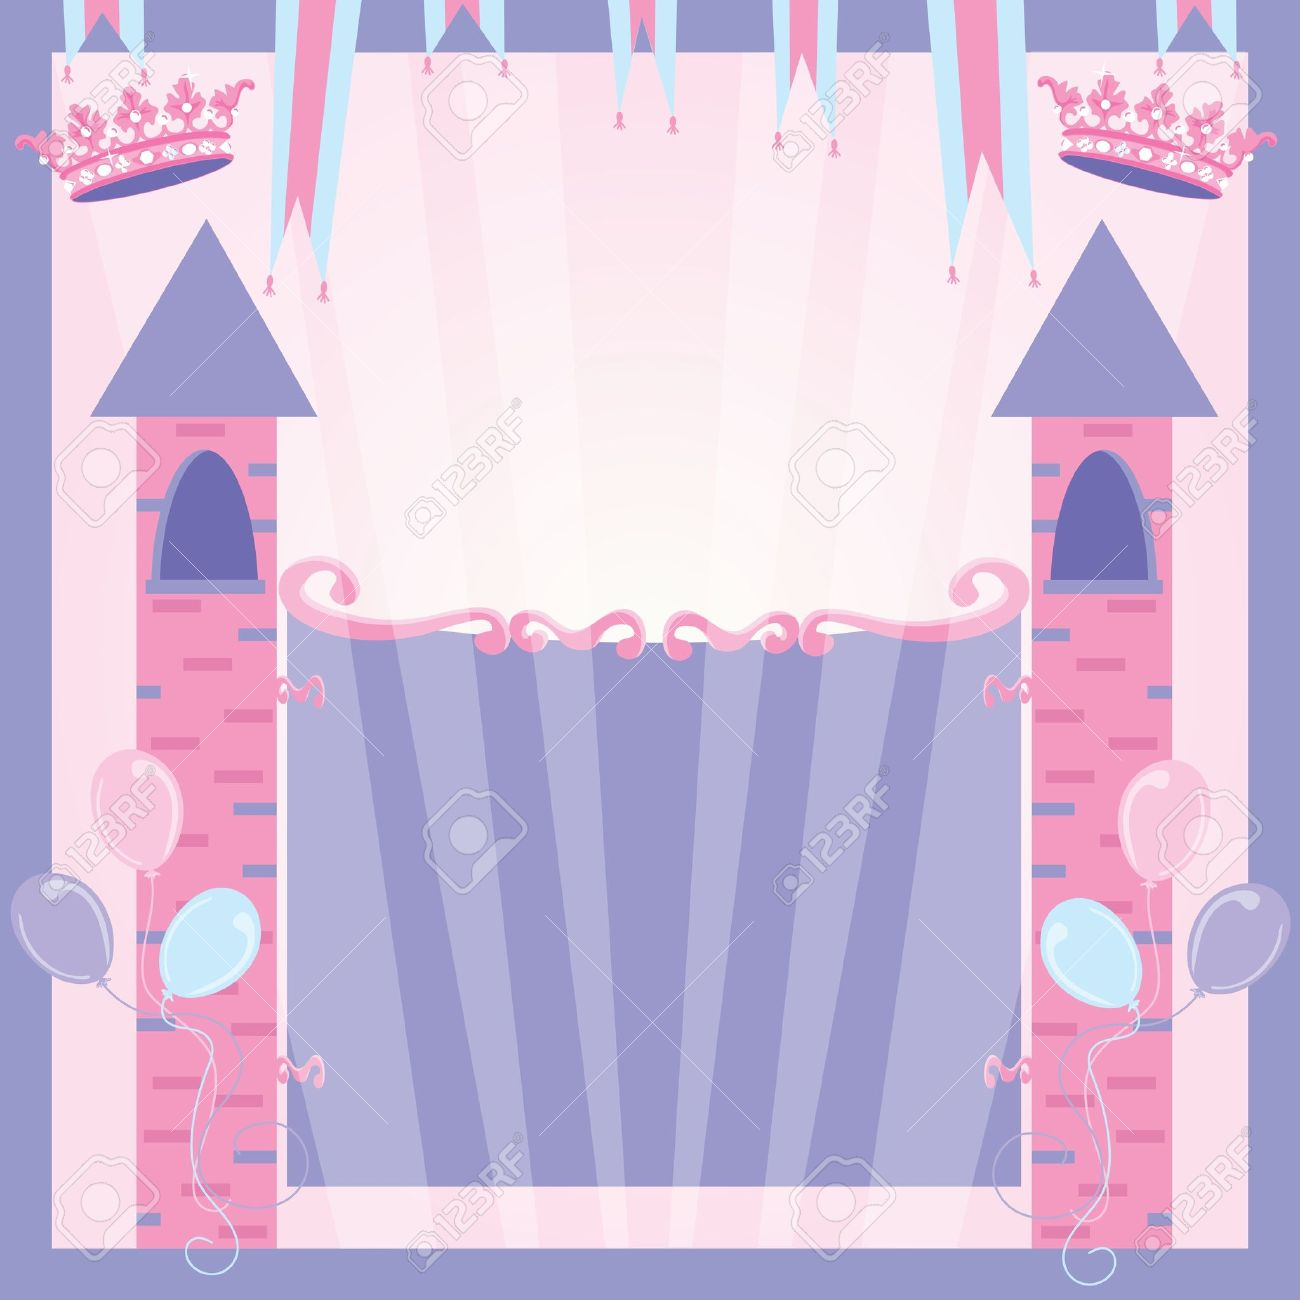 Princess birthday party invitation castle royalty free cliparts princess birthday party invitation castle stock vector 12482403 filmwisefo